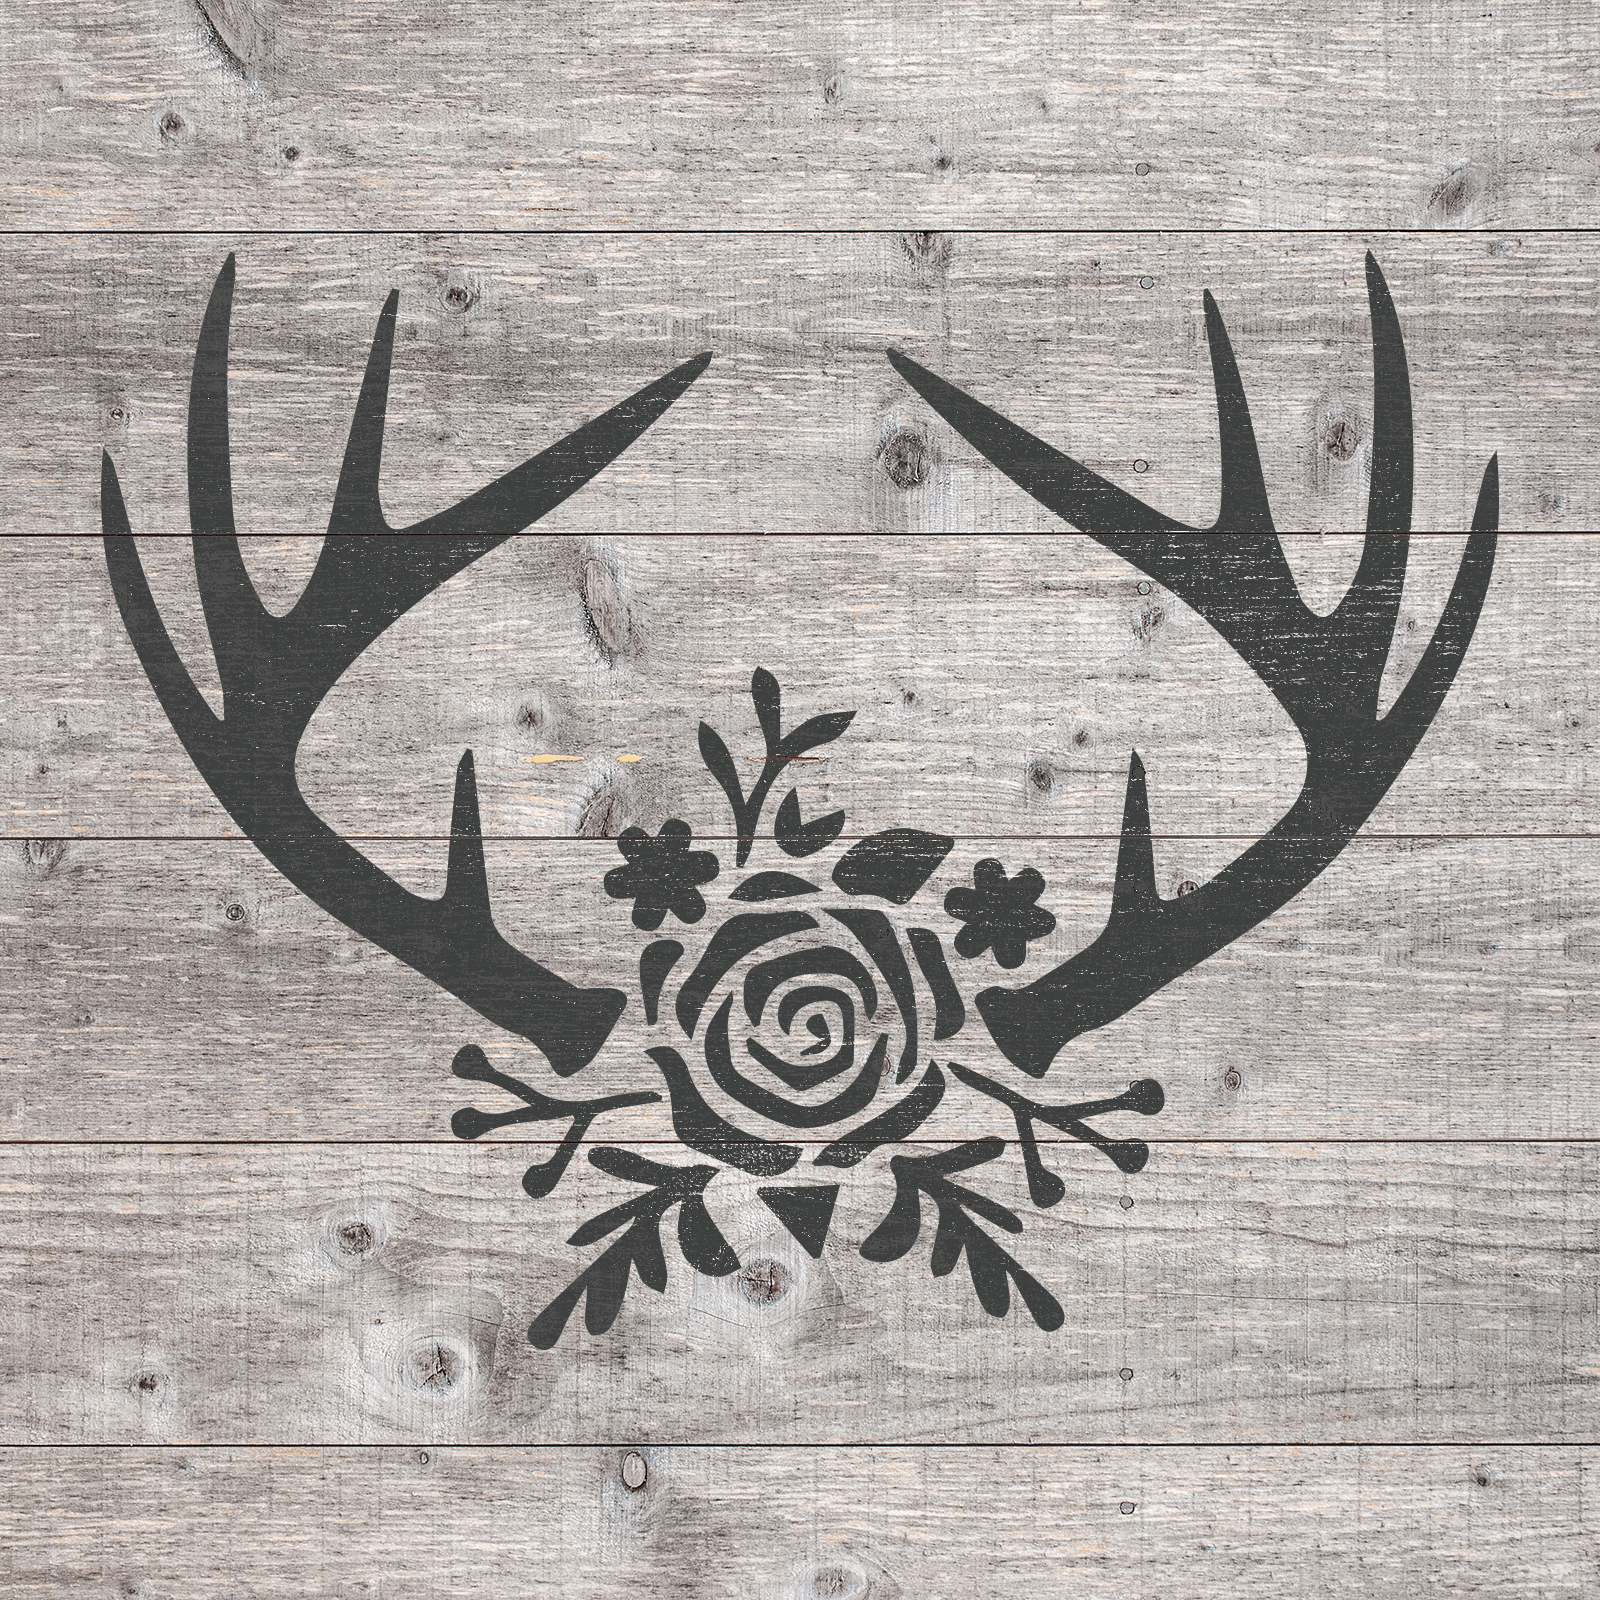 Rose Antlers Stencil - Reusable Stencils of Rose Antlers in Multiple Sizes